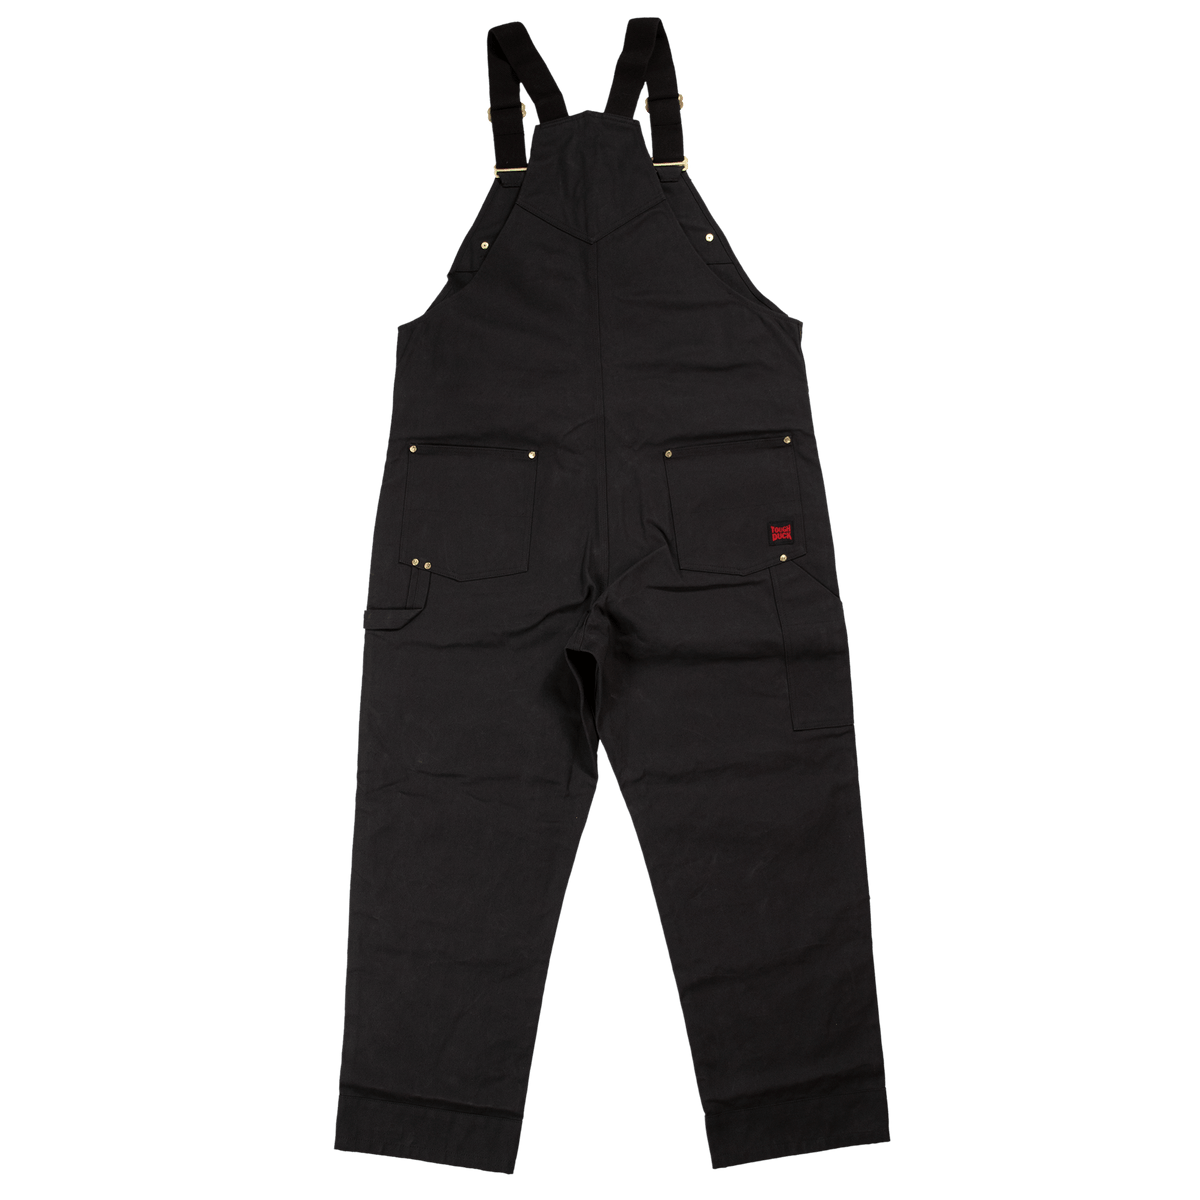 Tough Duck WB04 Deluxe Unlined Bib Overall | Black | S-5XL Work Wear - Cleanflow